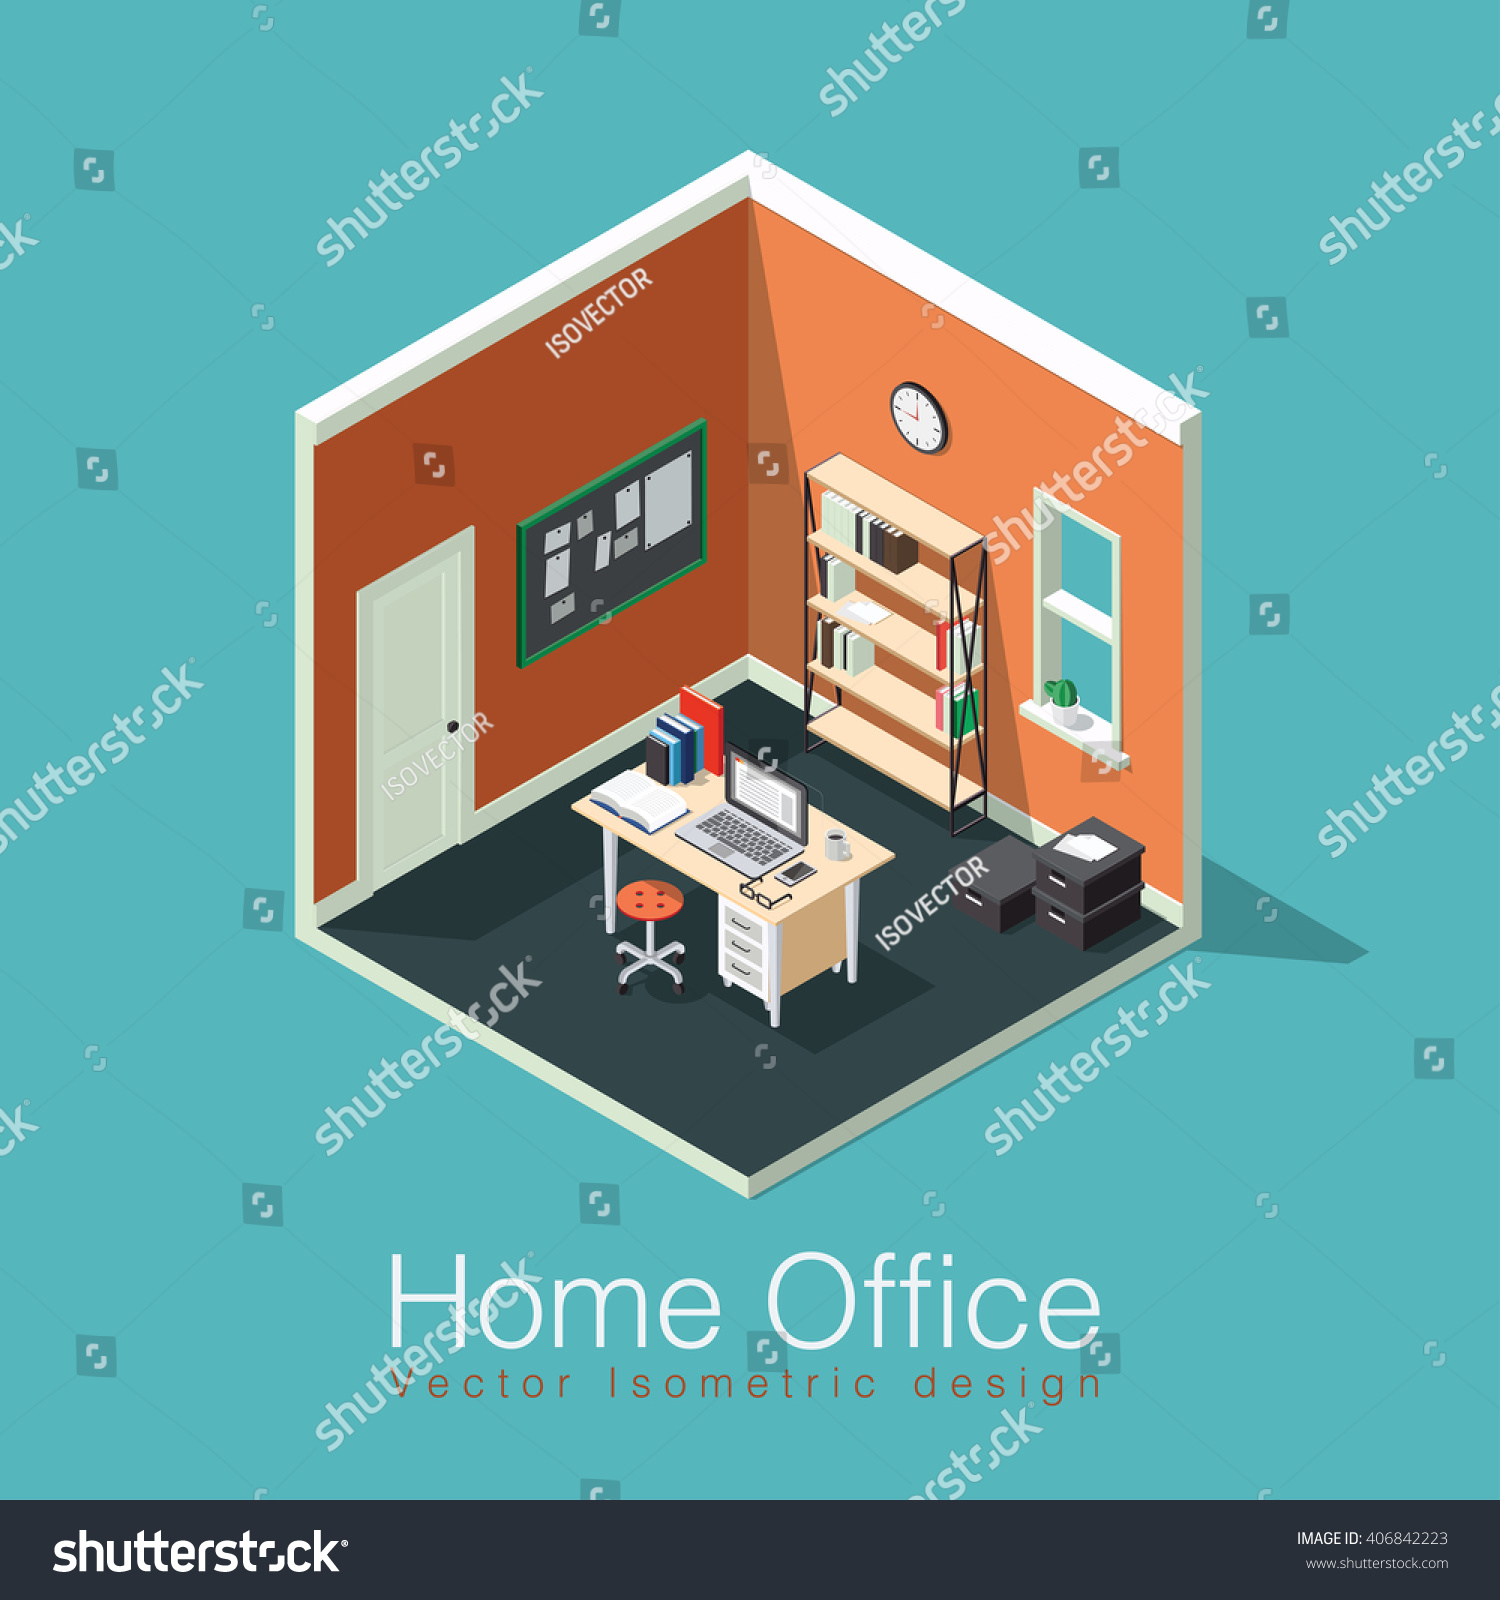 Home Office Concept Isometric Vector Illustration. Isometric Side View  Interior Home Office Room With Bookshelf